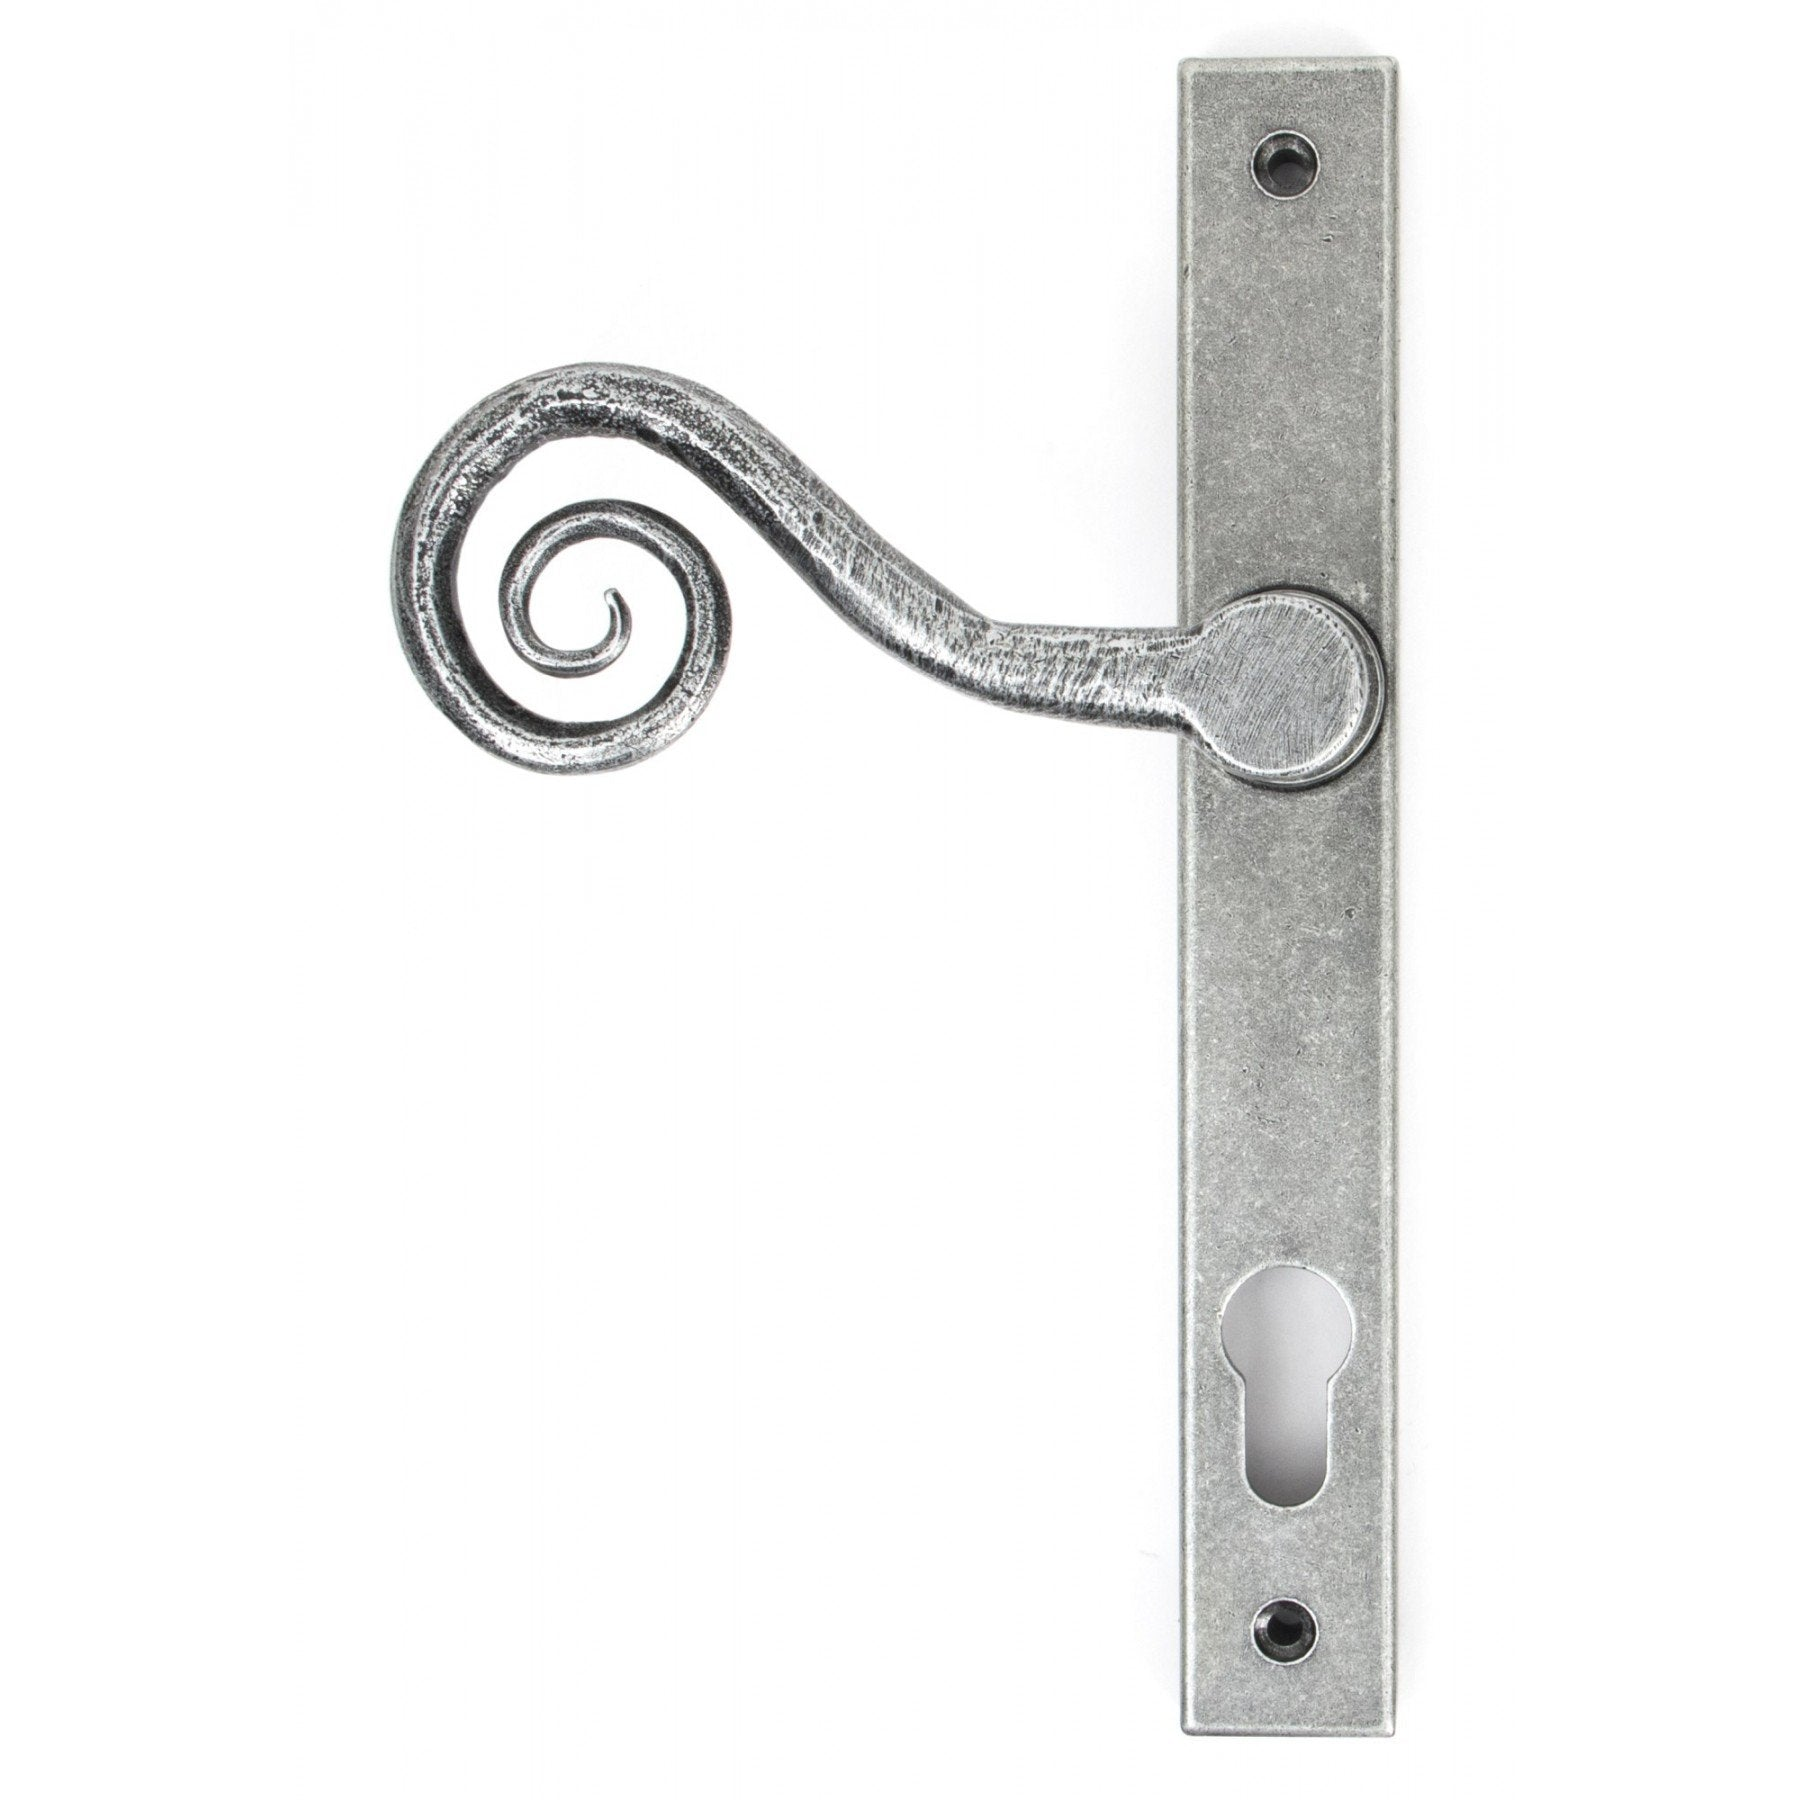 Pewter Patina Monkeytail Slimline Lever Espag. Lock Set - RH - No.42 Interiors